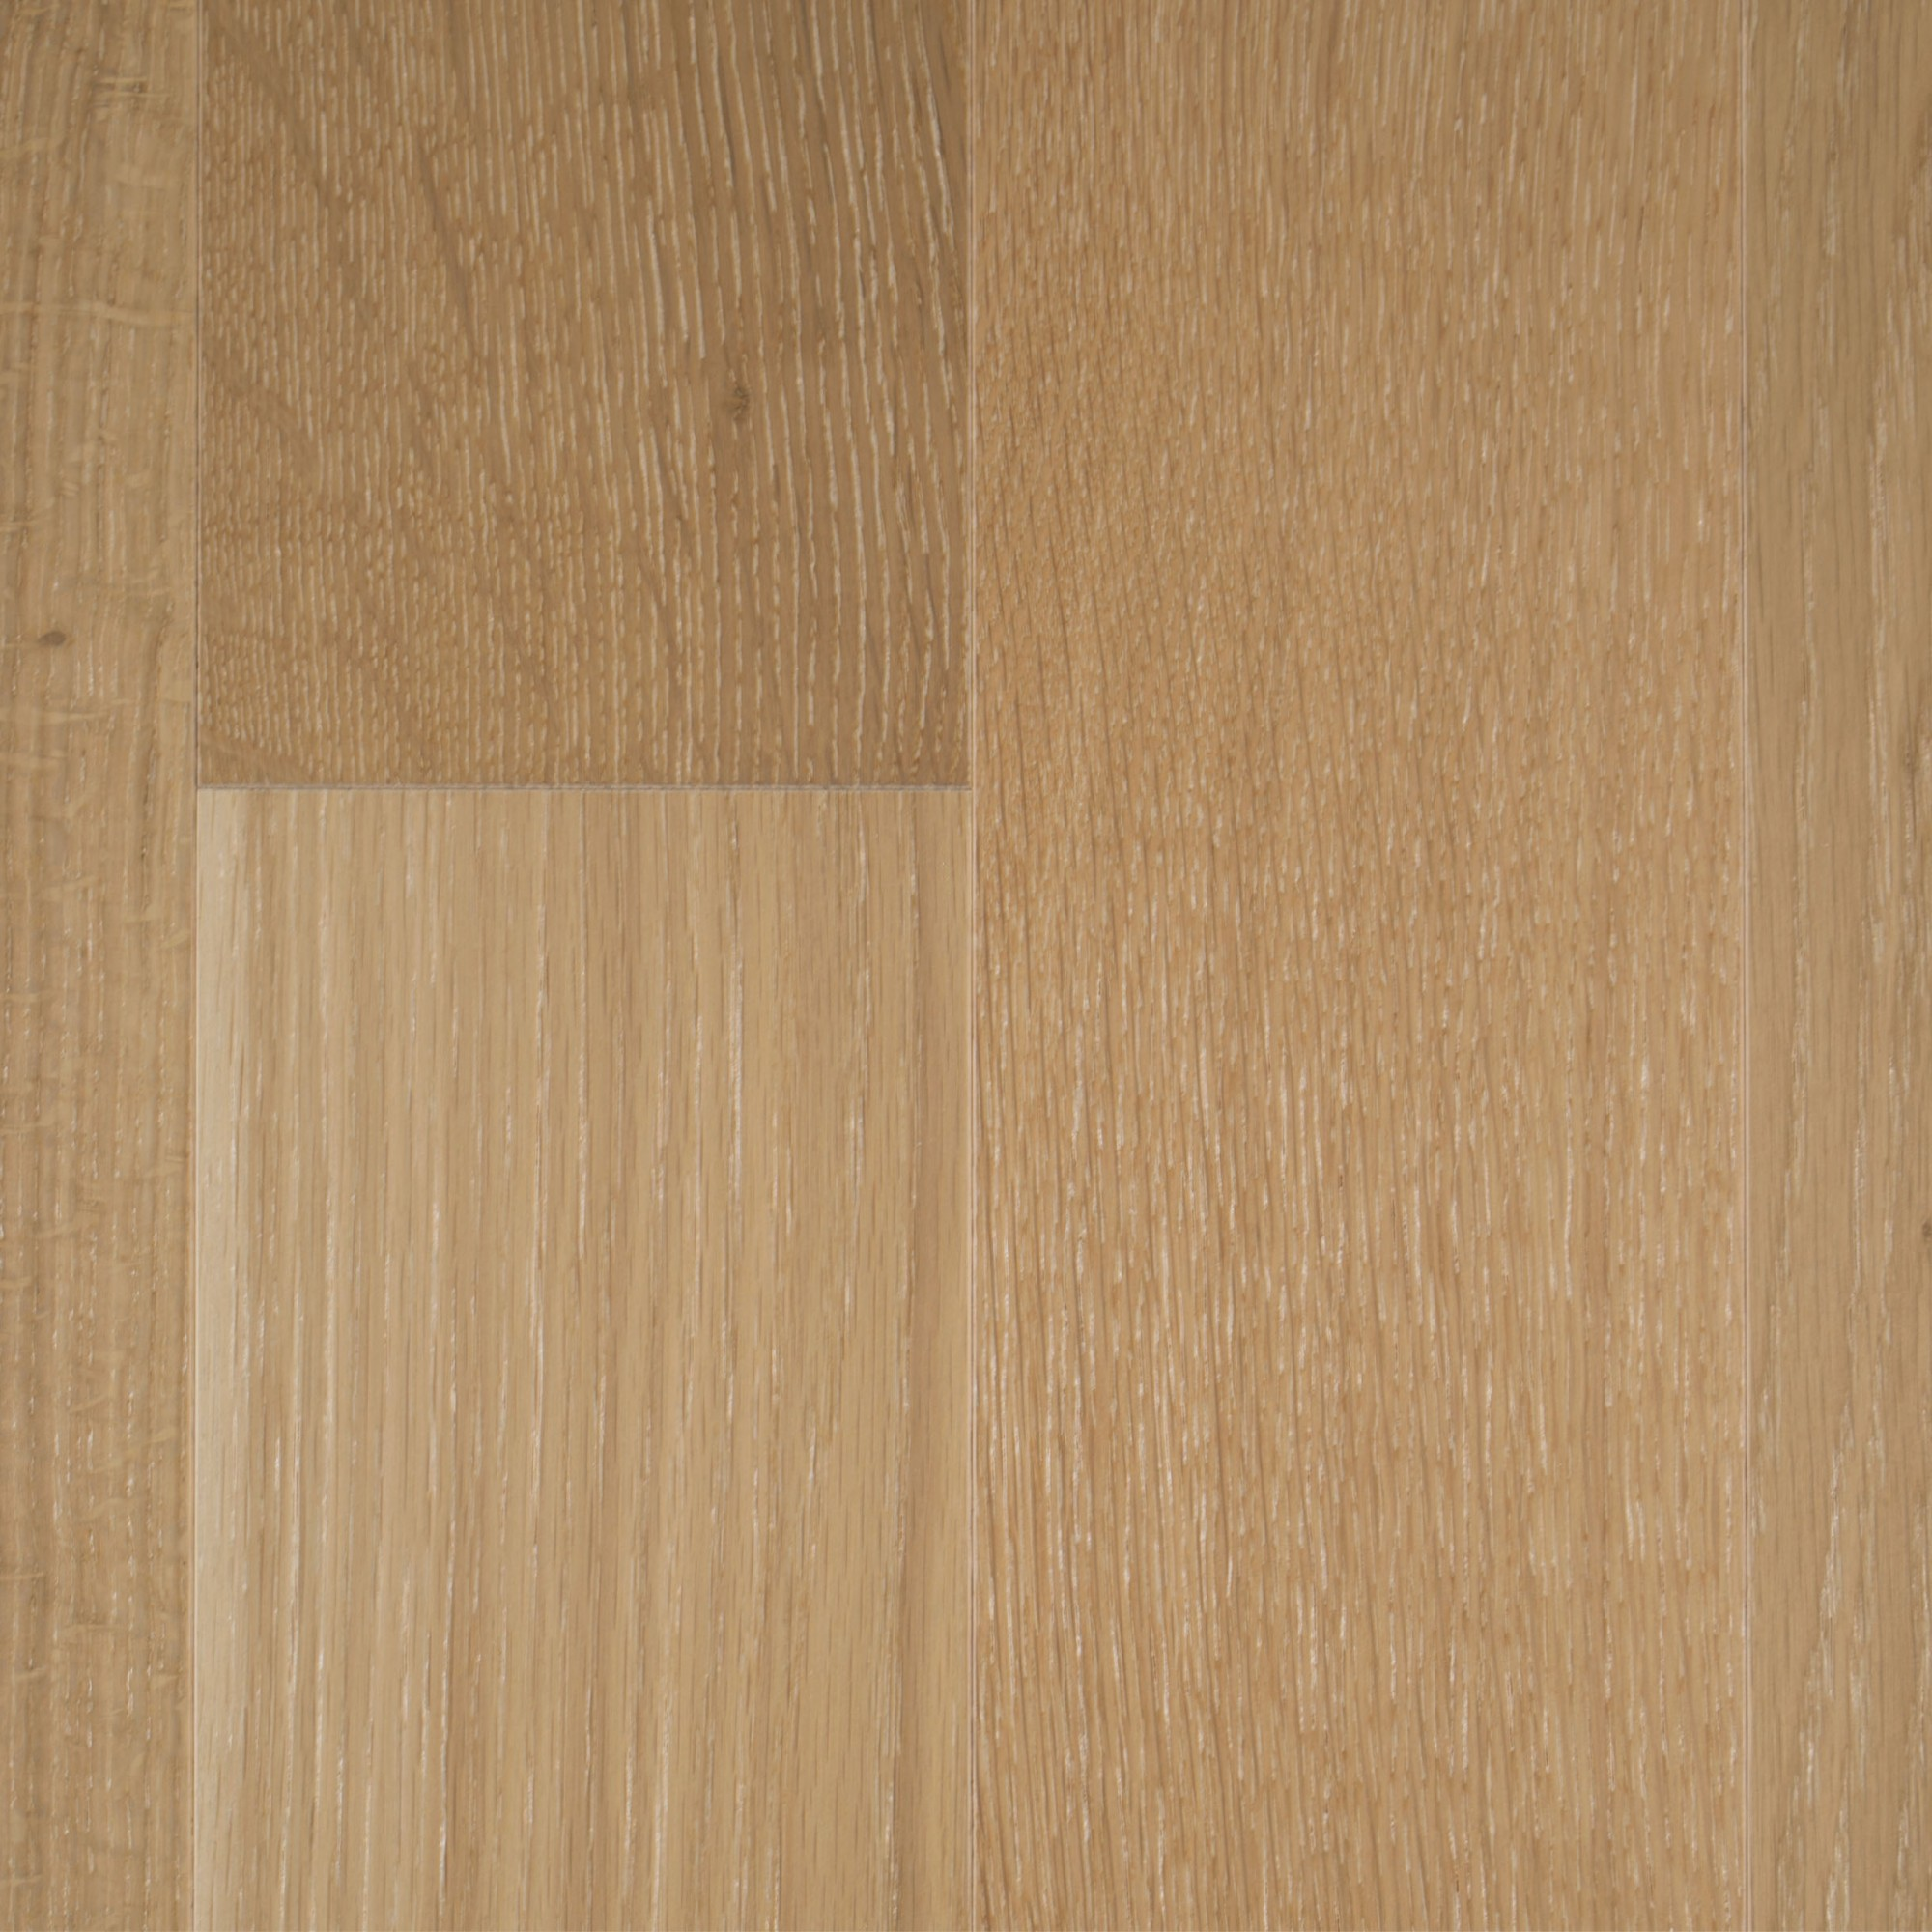 White Oak Orion Wire Brushed Rift & Quarter Sawn